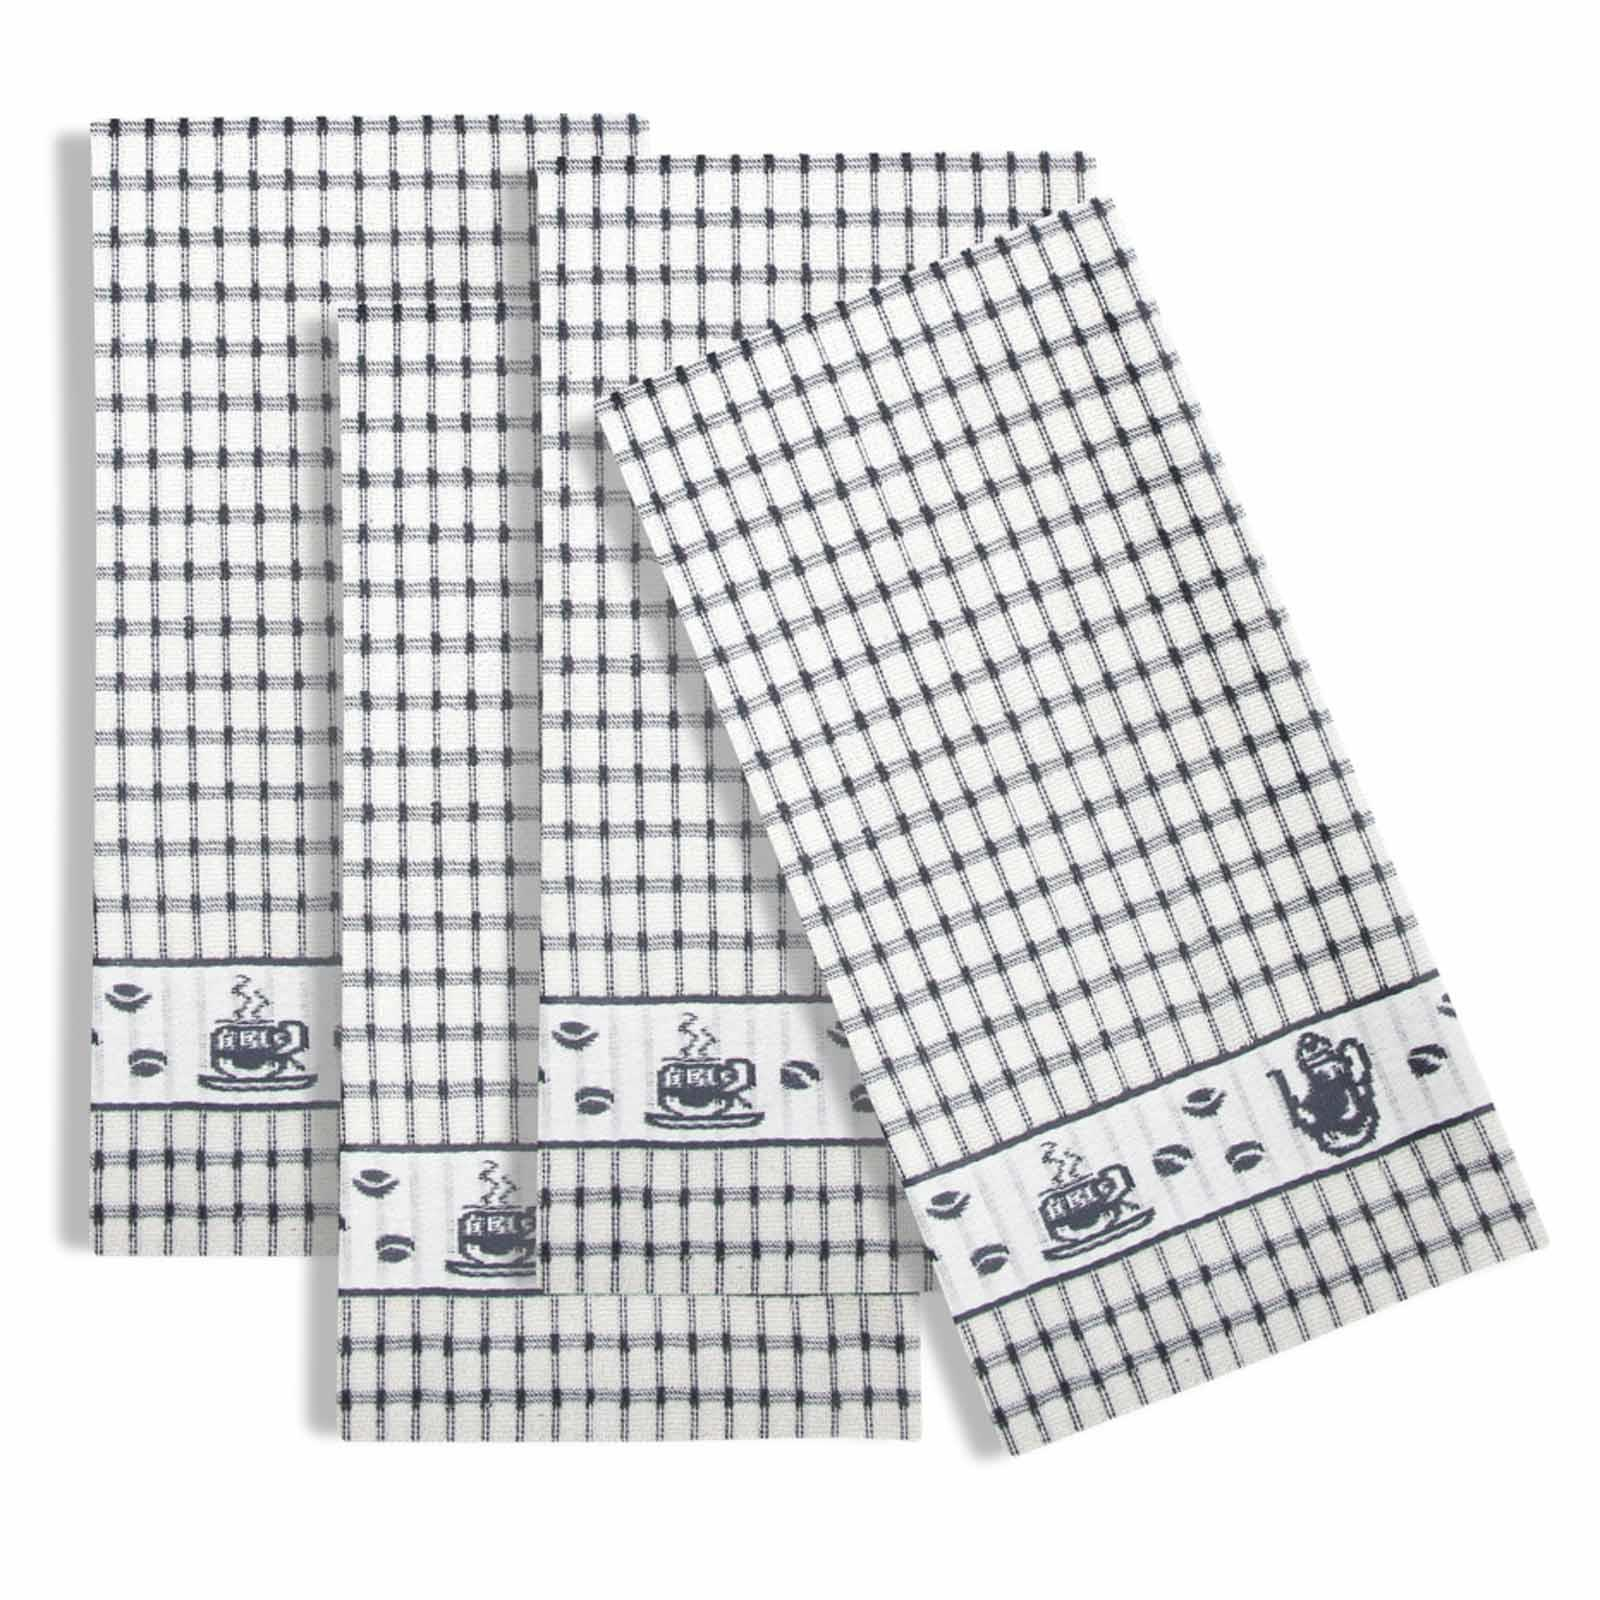 Packs-of-2-4-6-12-Tea-Towels-100-Cotton-Terry-Kitchen-Dish-Drying-Towel-Sets thumbnail 48